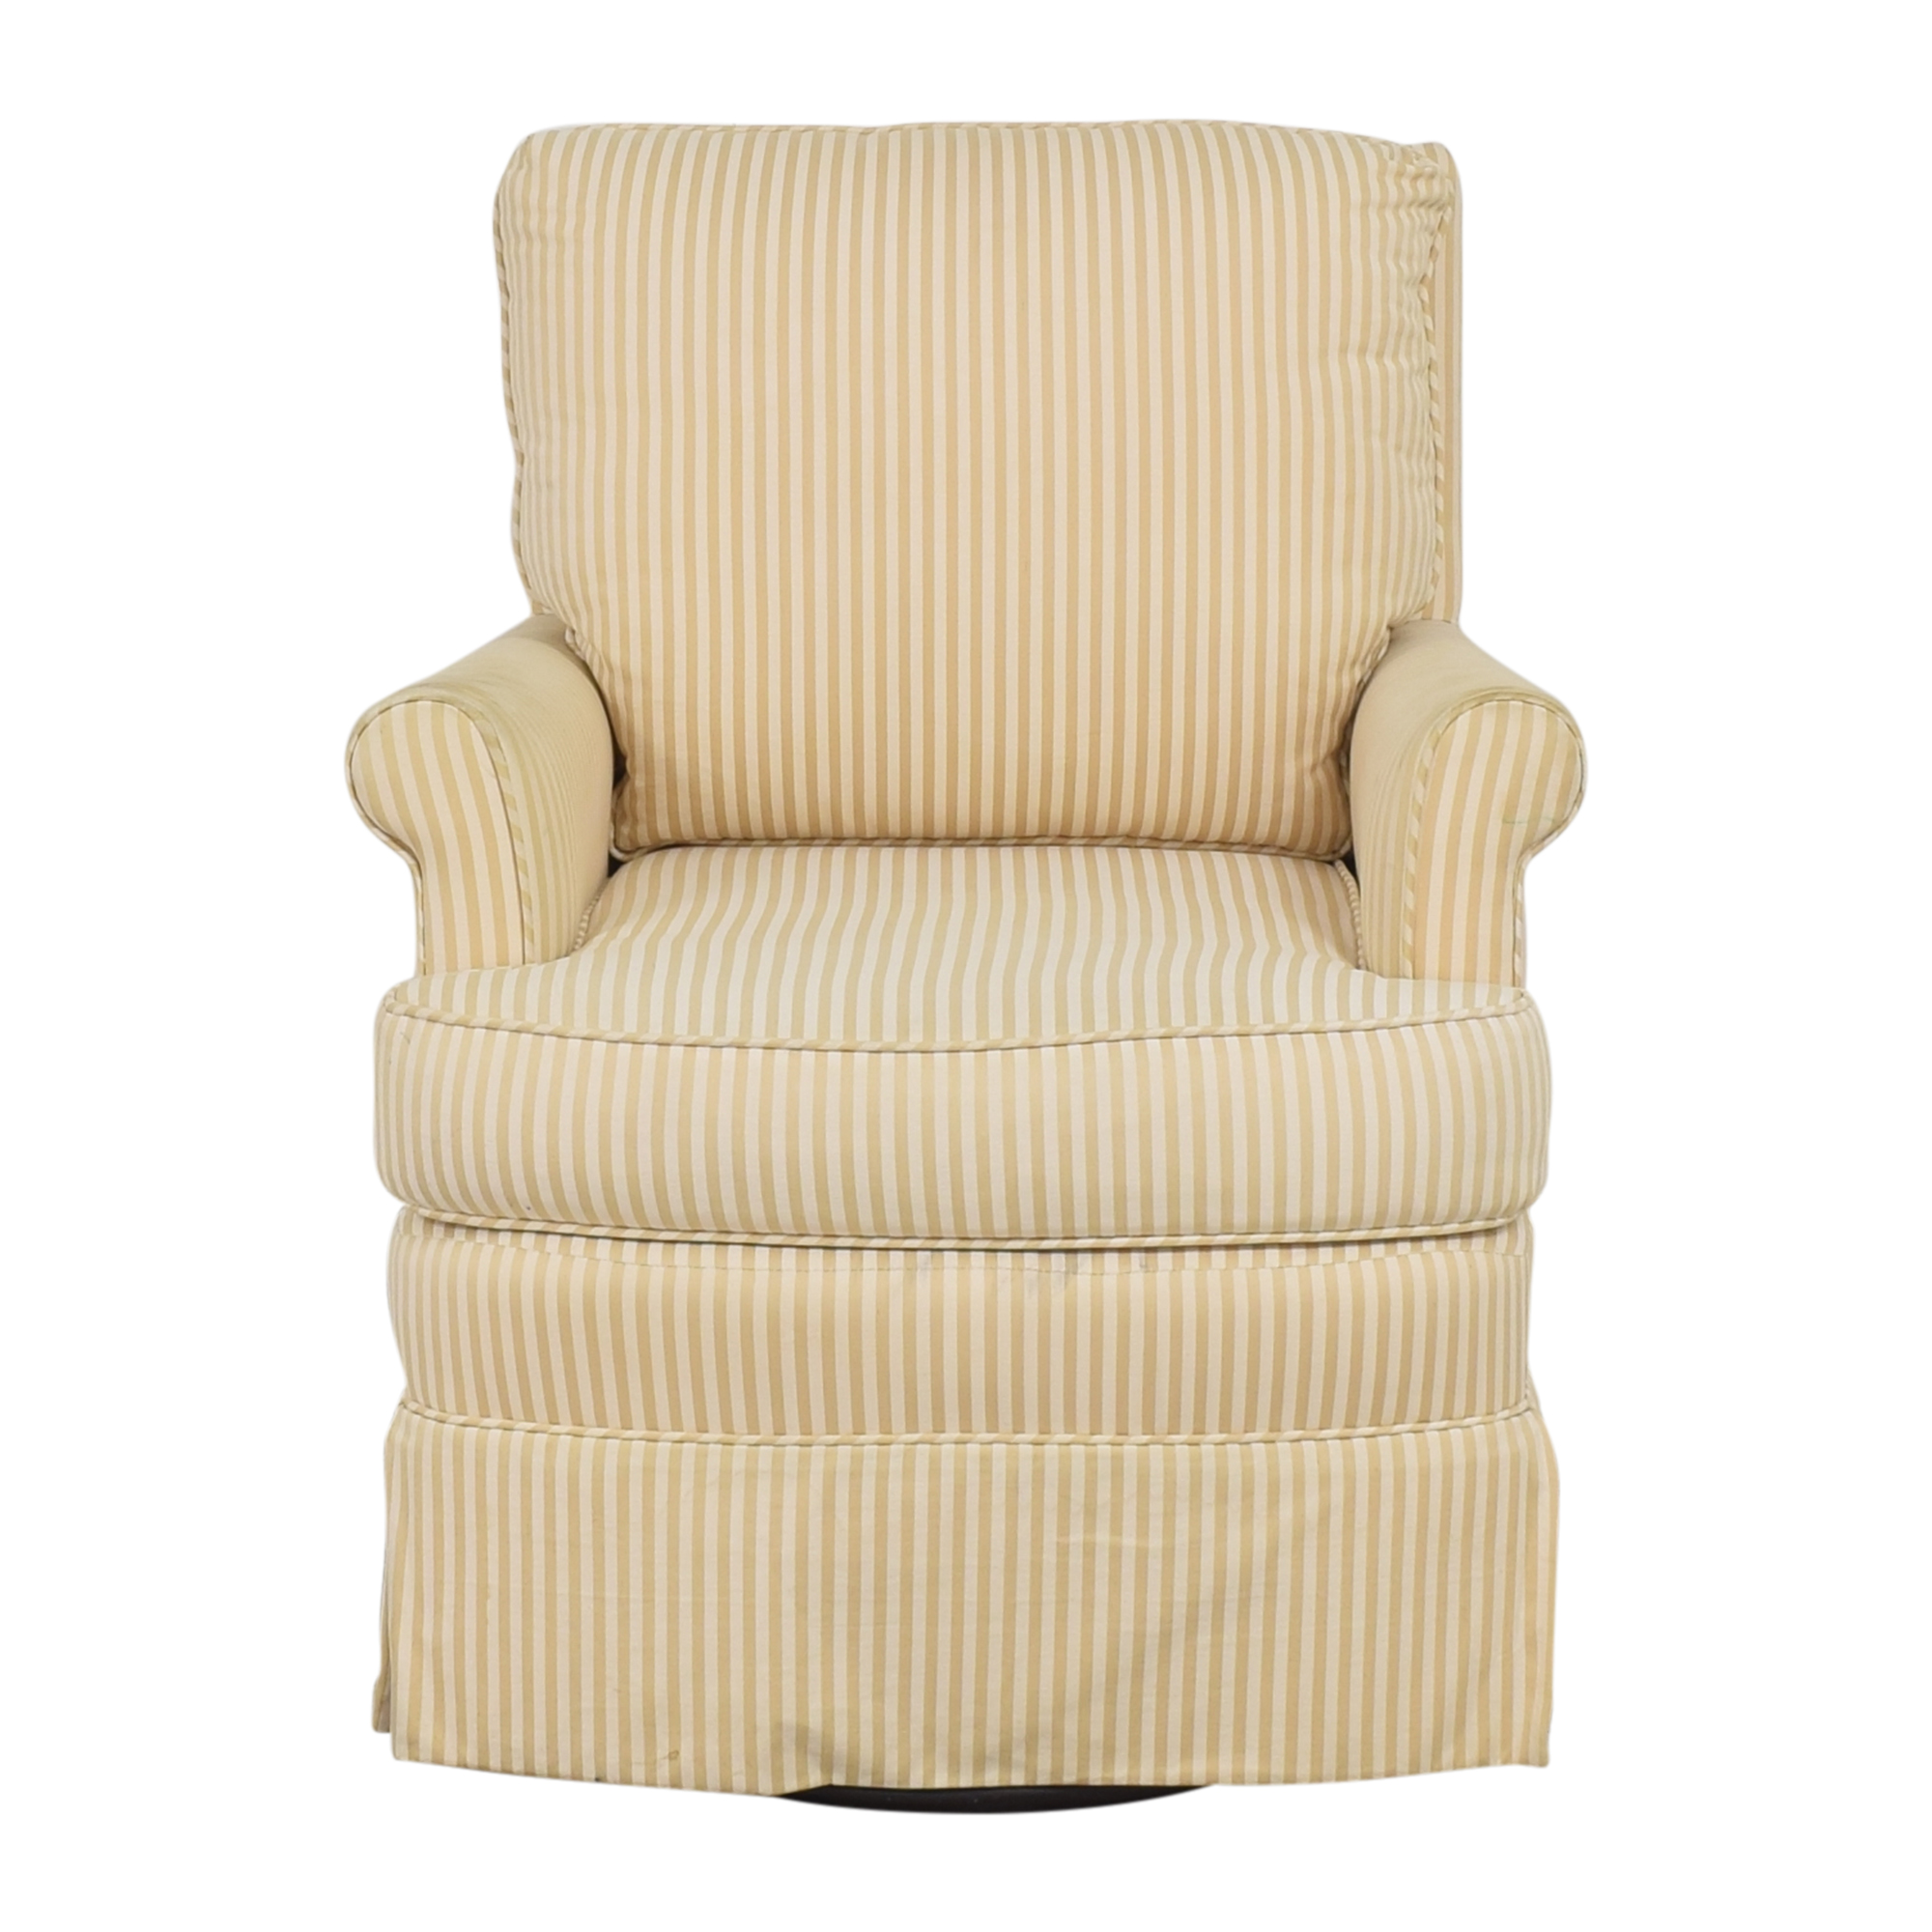 Cox Manufacturing Cox Manufacturing Swivel Glider Chair for sale